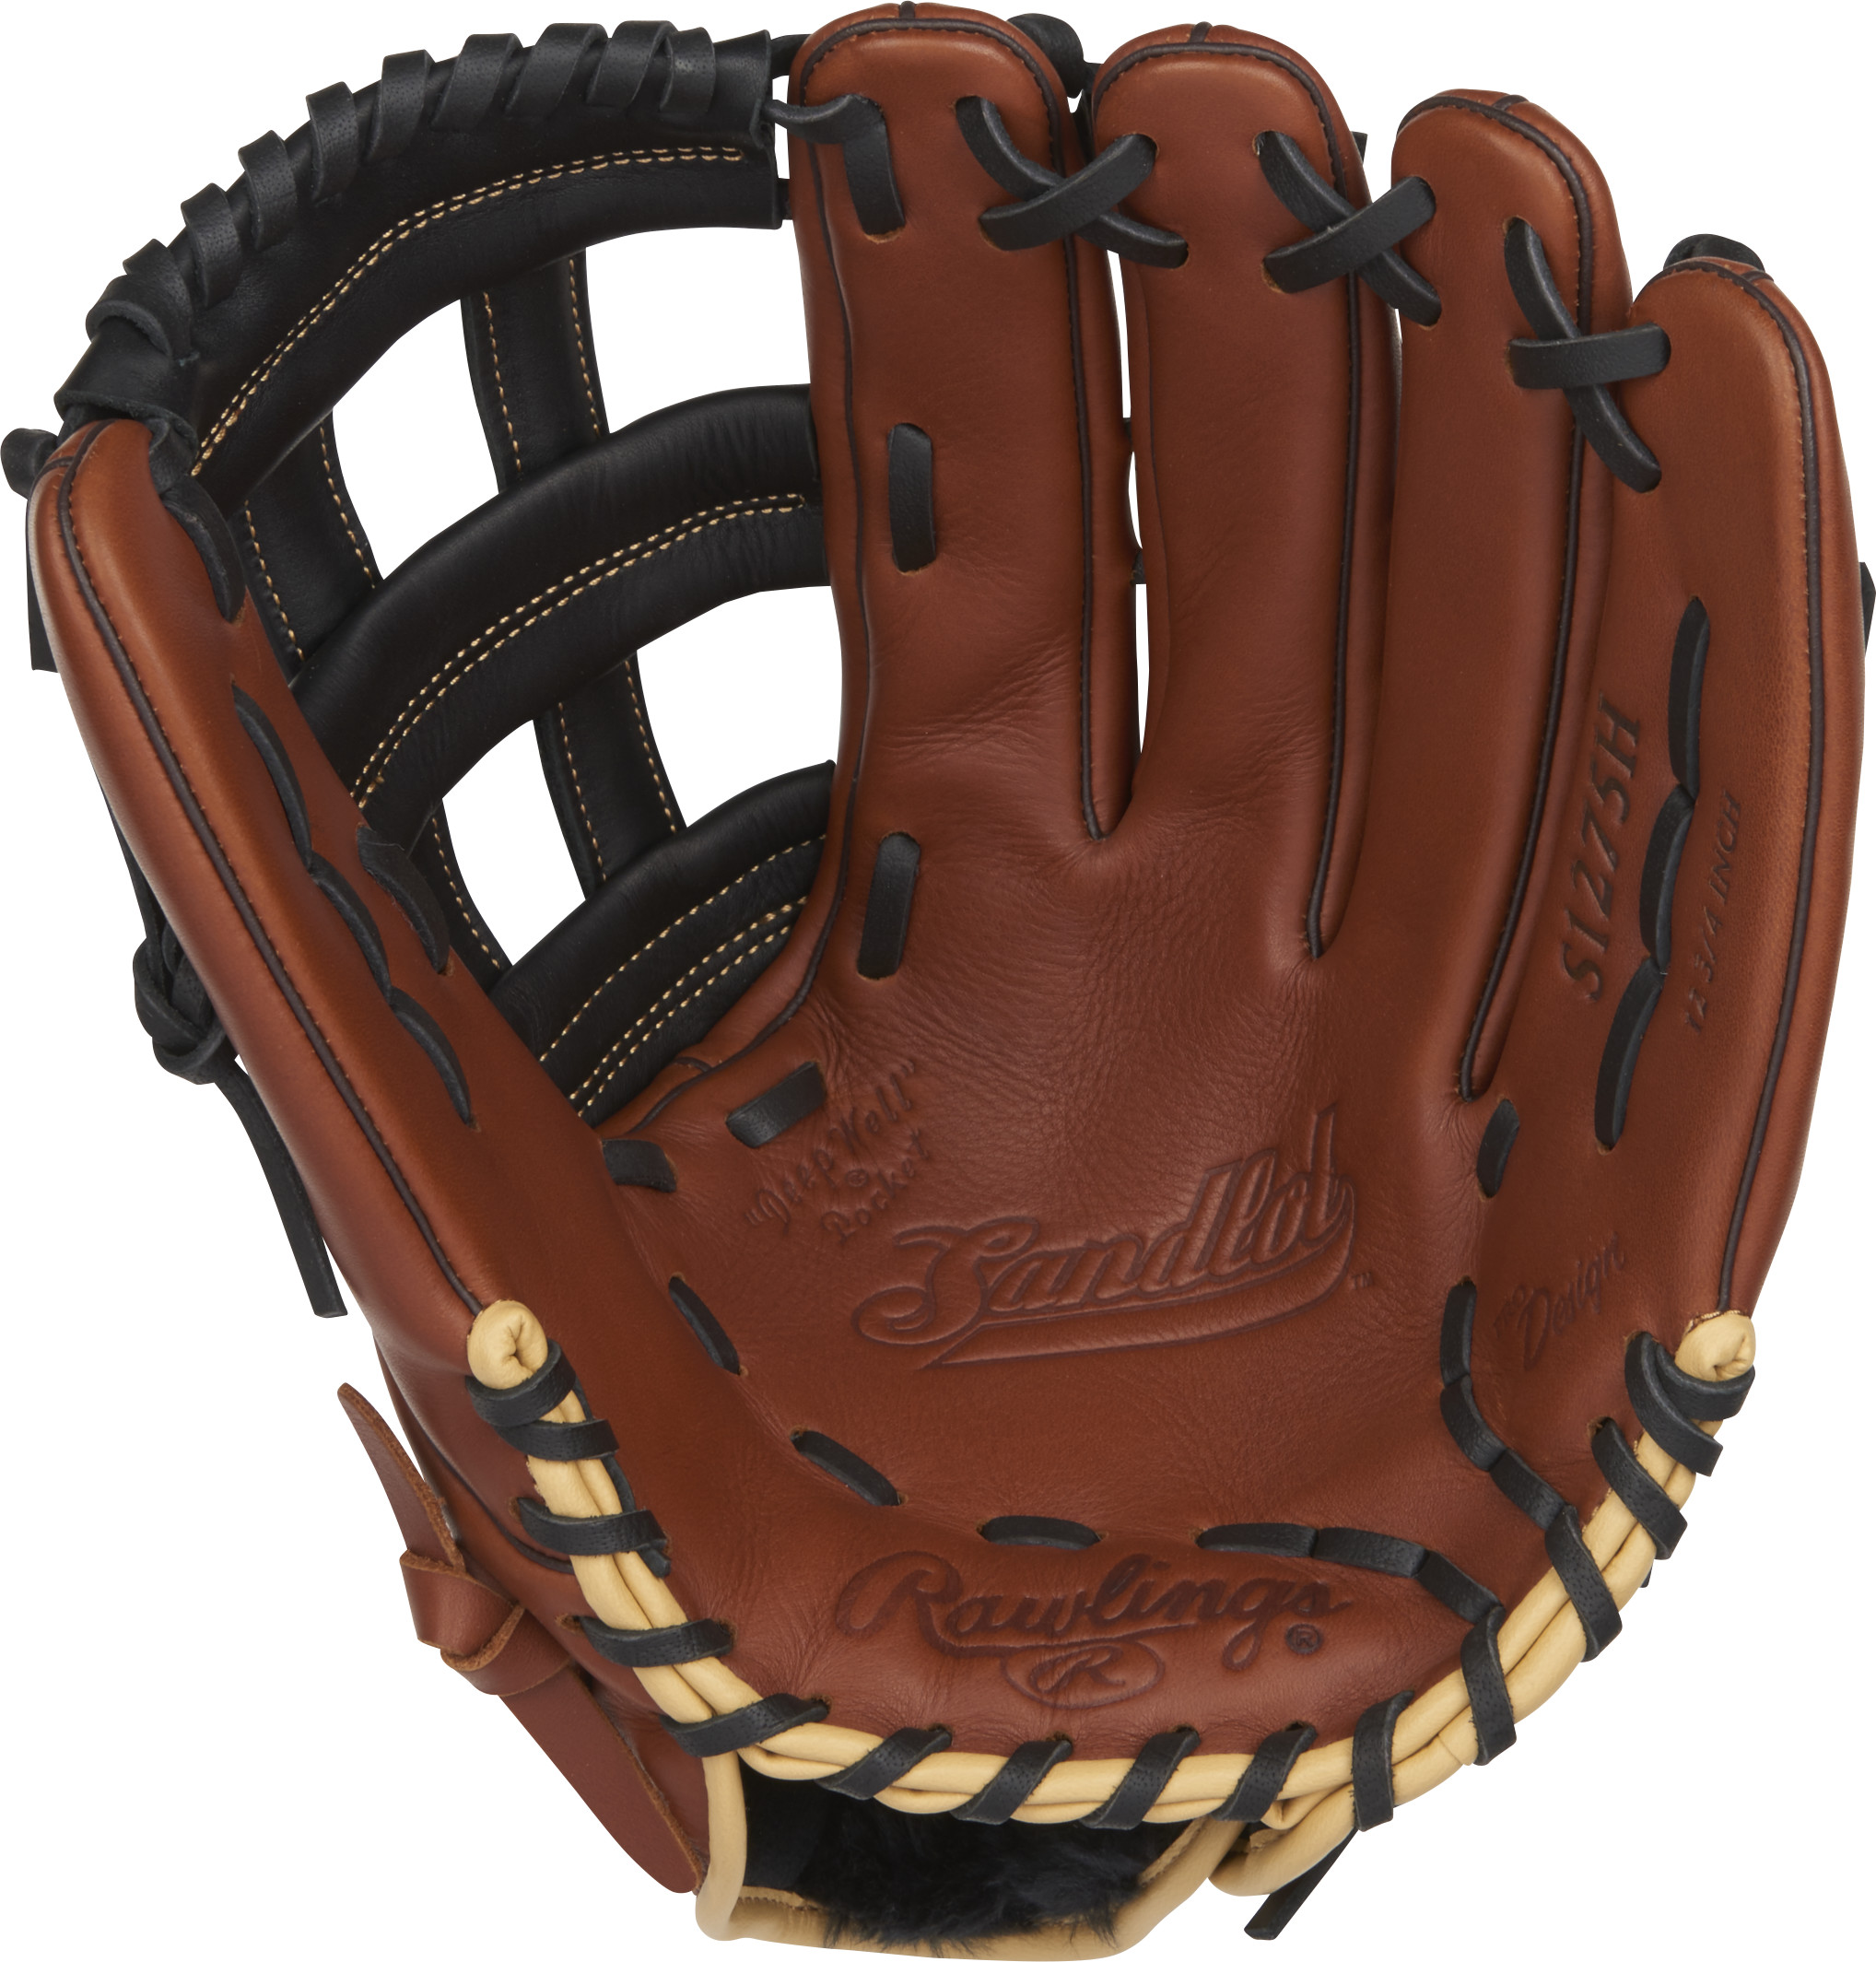 http://www.bestbatdeals.com/images/gloves/rawlings/S1275H-1.jpg